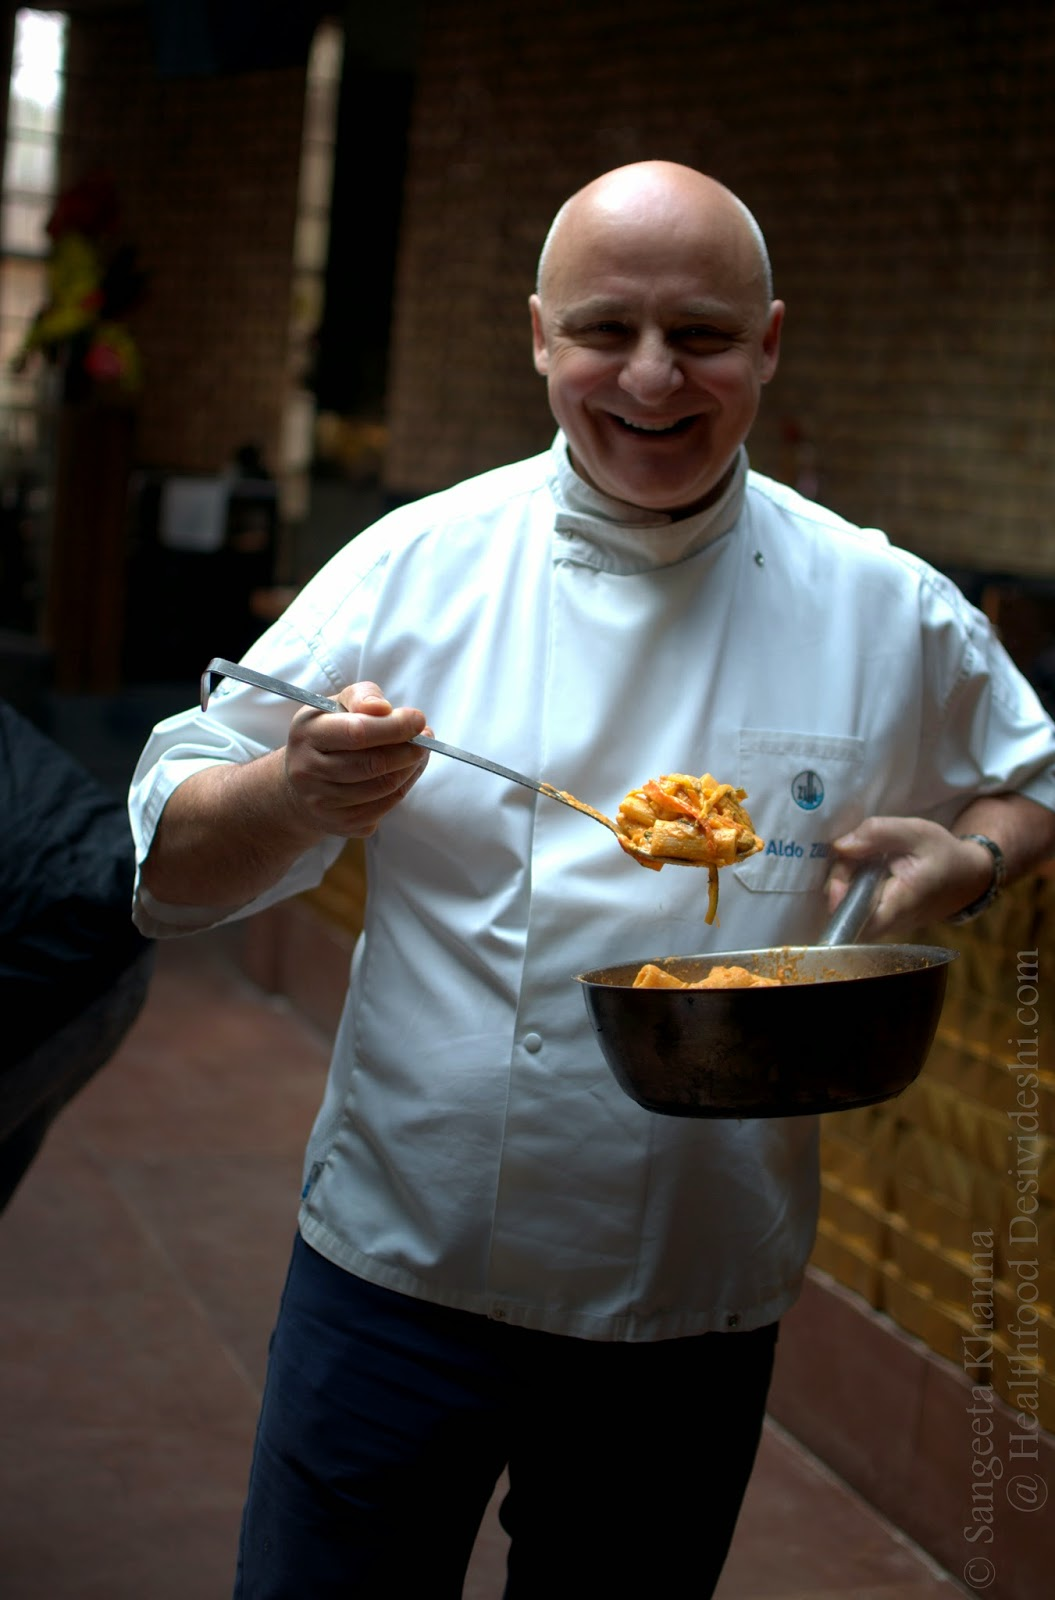 Chef Aldo Zilli at Zerruco by Zilli, a passionate Chef and how he eats healthy